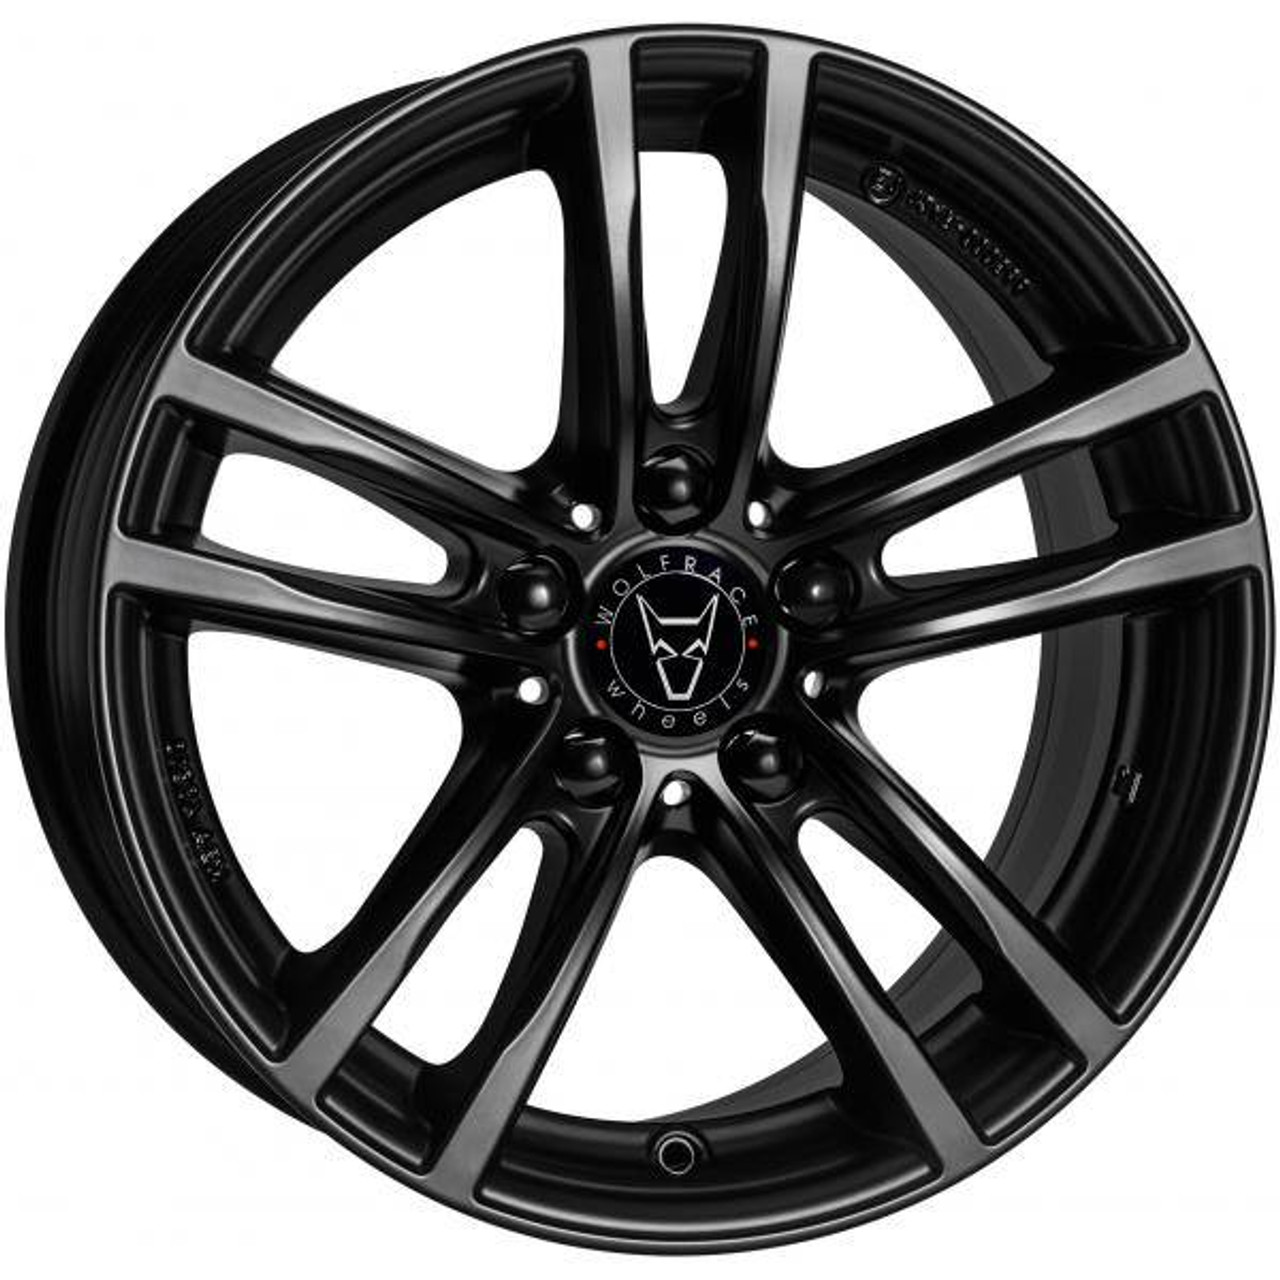 Wolfrace GB X10X Alloy Wheels Gloss Black